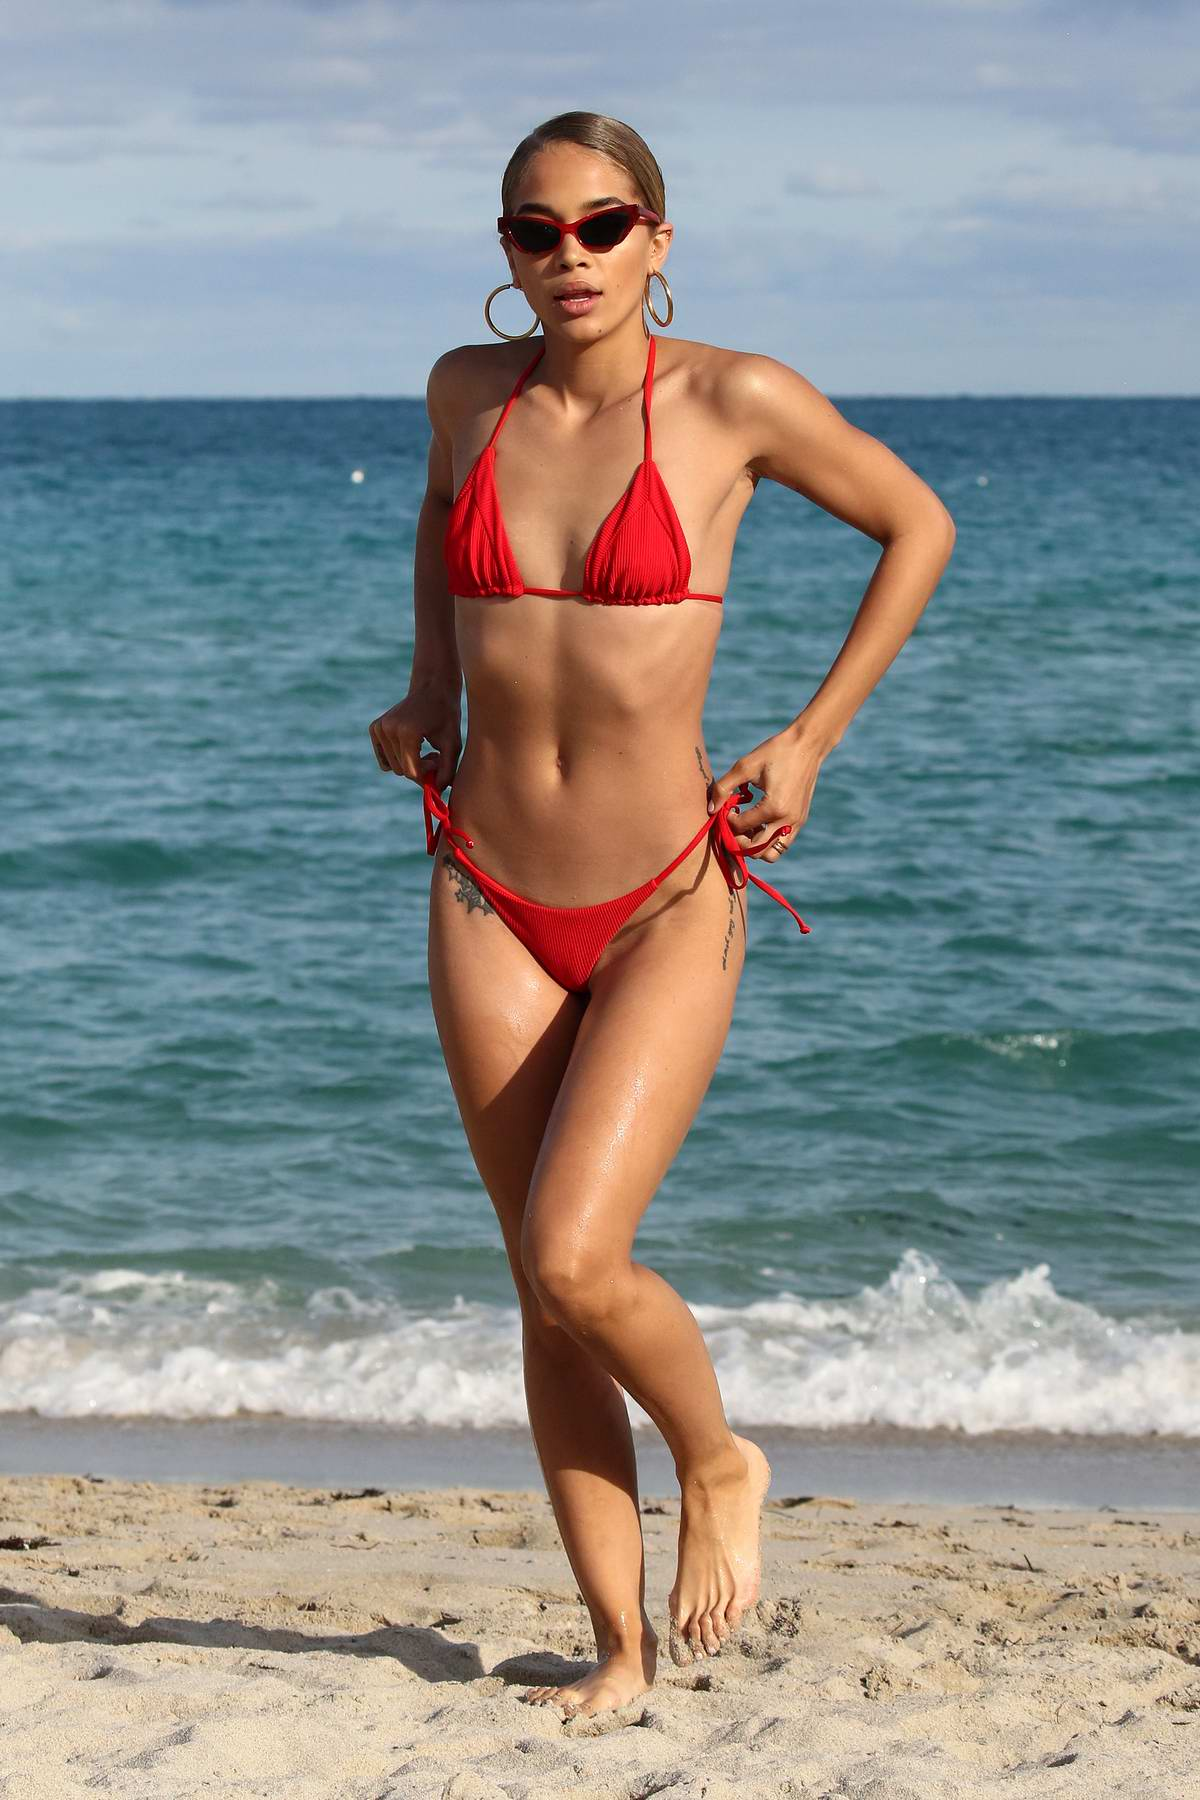 Jasmine Sanders wears a red bikini as she hits the beach in Miami, Florida